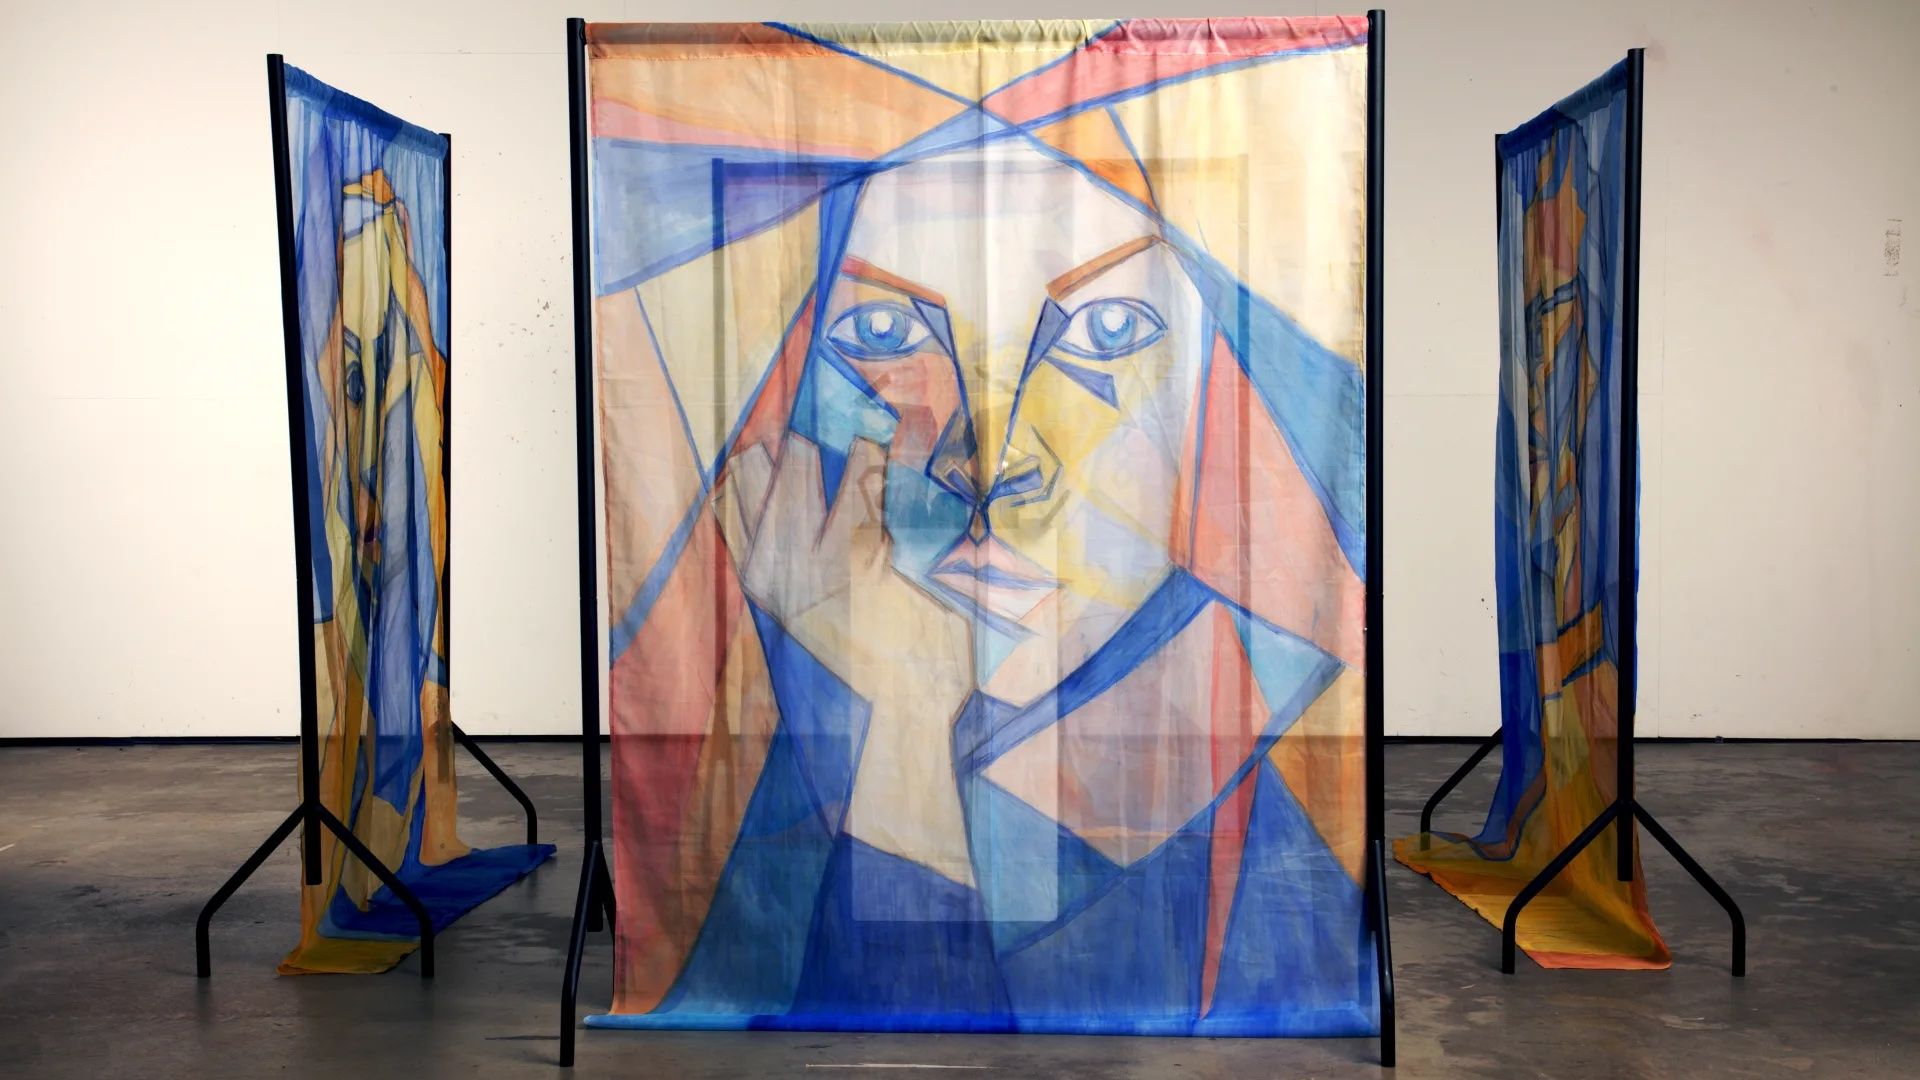 Three oil portraits on voile panels hung from steel sculpture